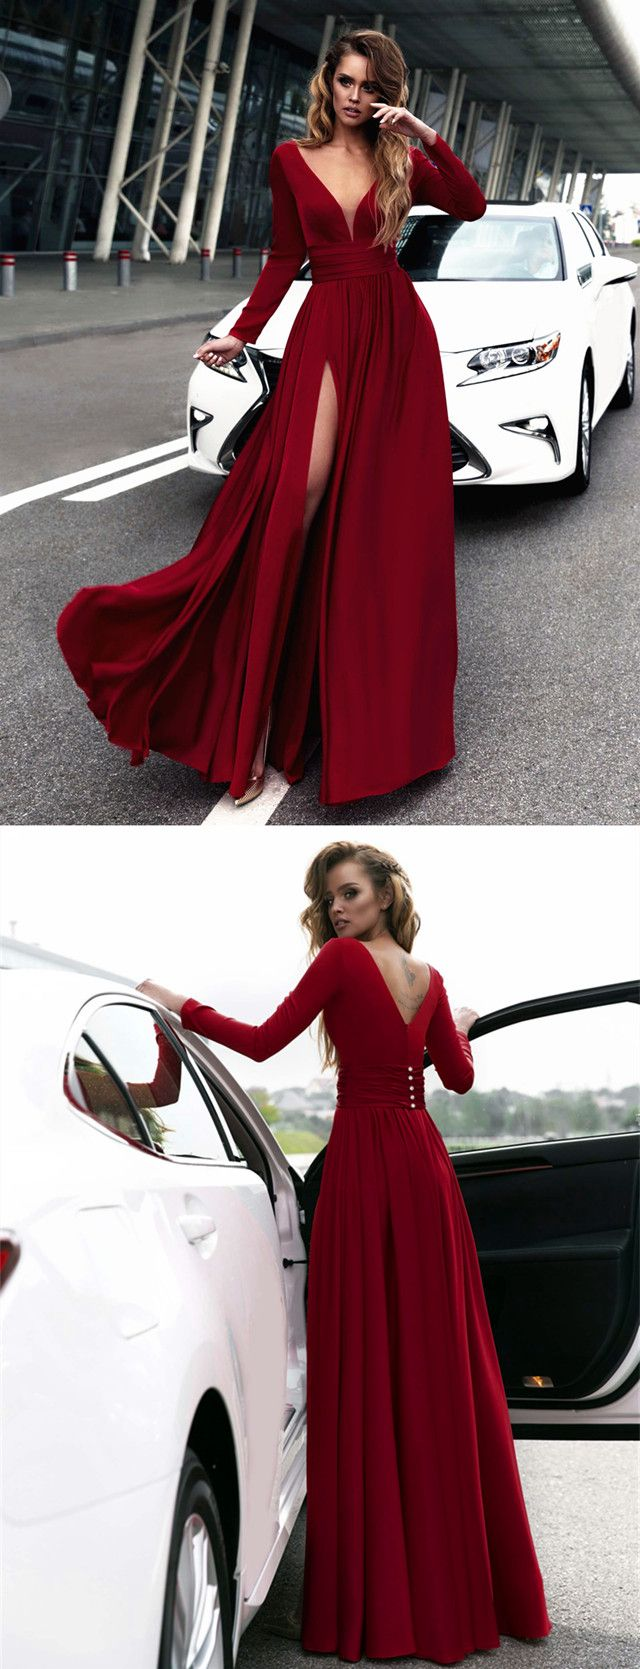 burgundy prom dress,long sleeves prom dress,chiffon prom dress,long sleeves evening gowns,wine red formal dress